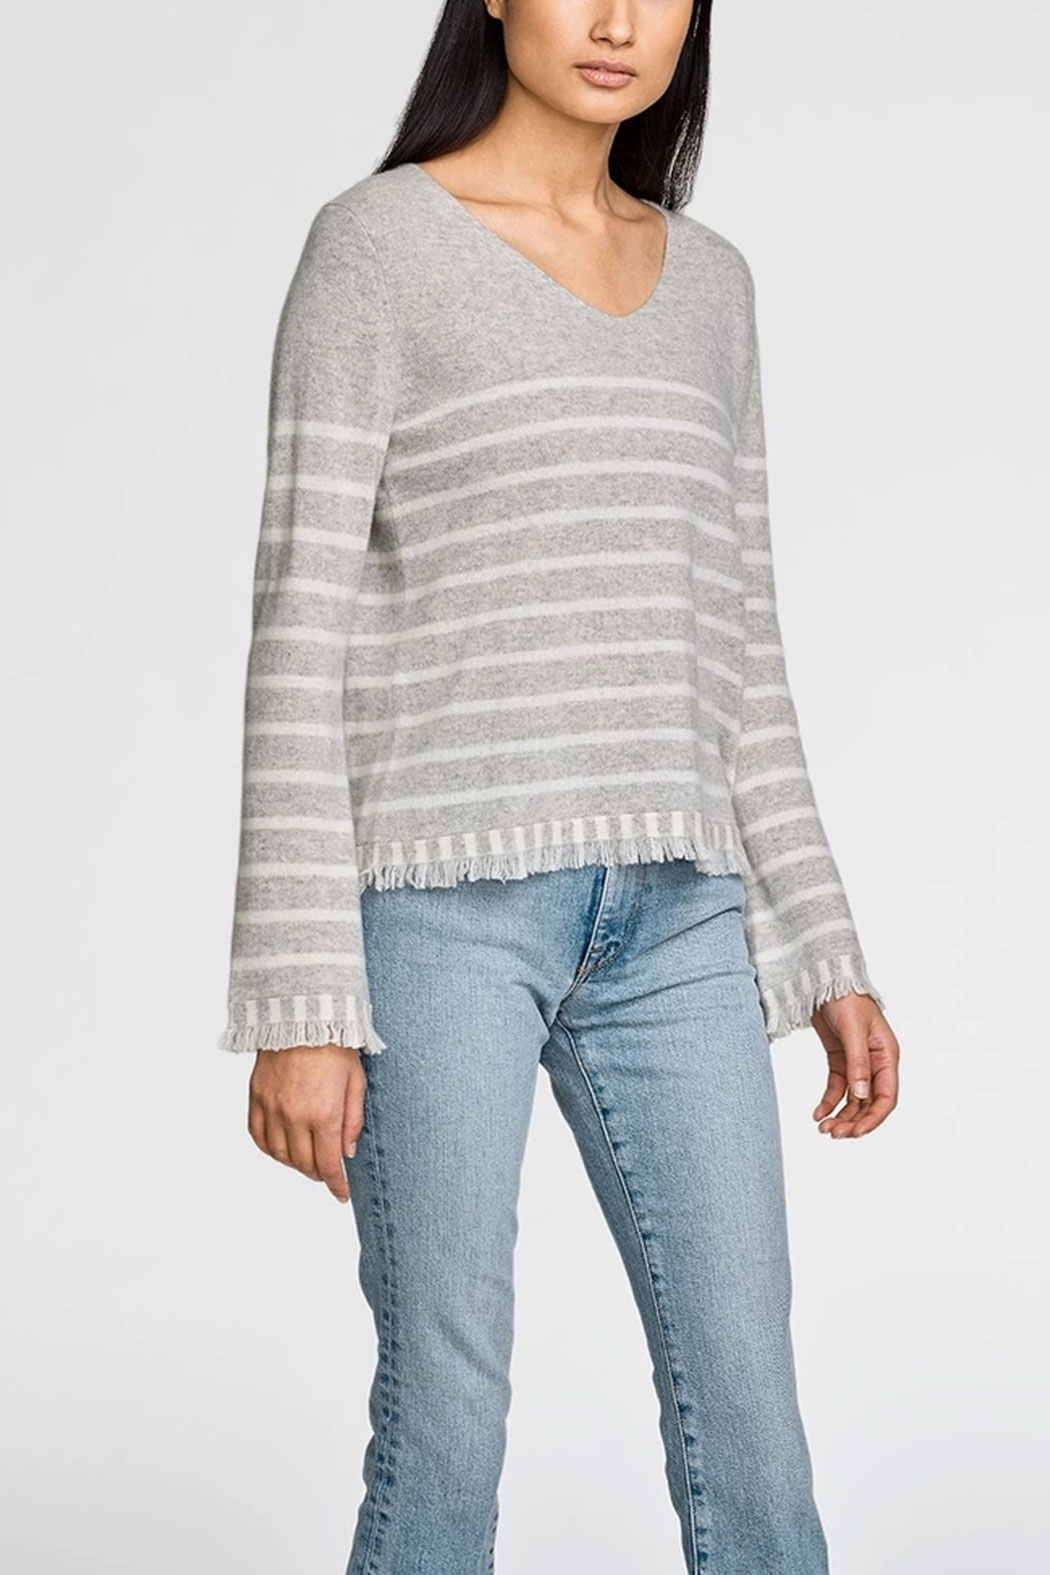 White + Warren Striped Fringe V-Neck Sweater - Main Image